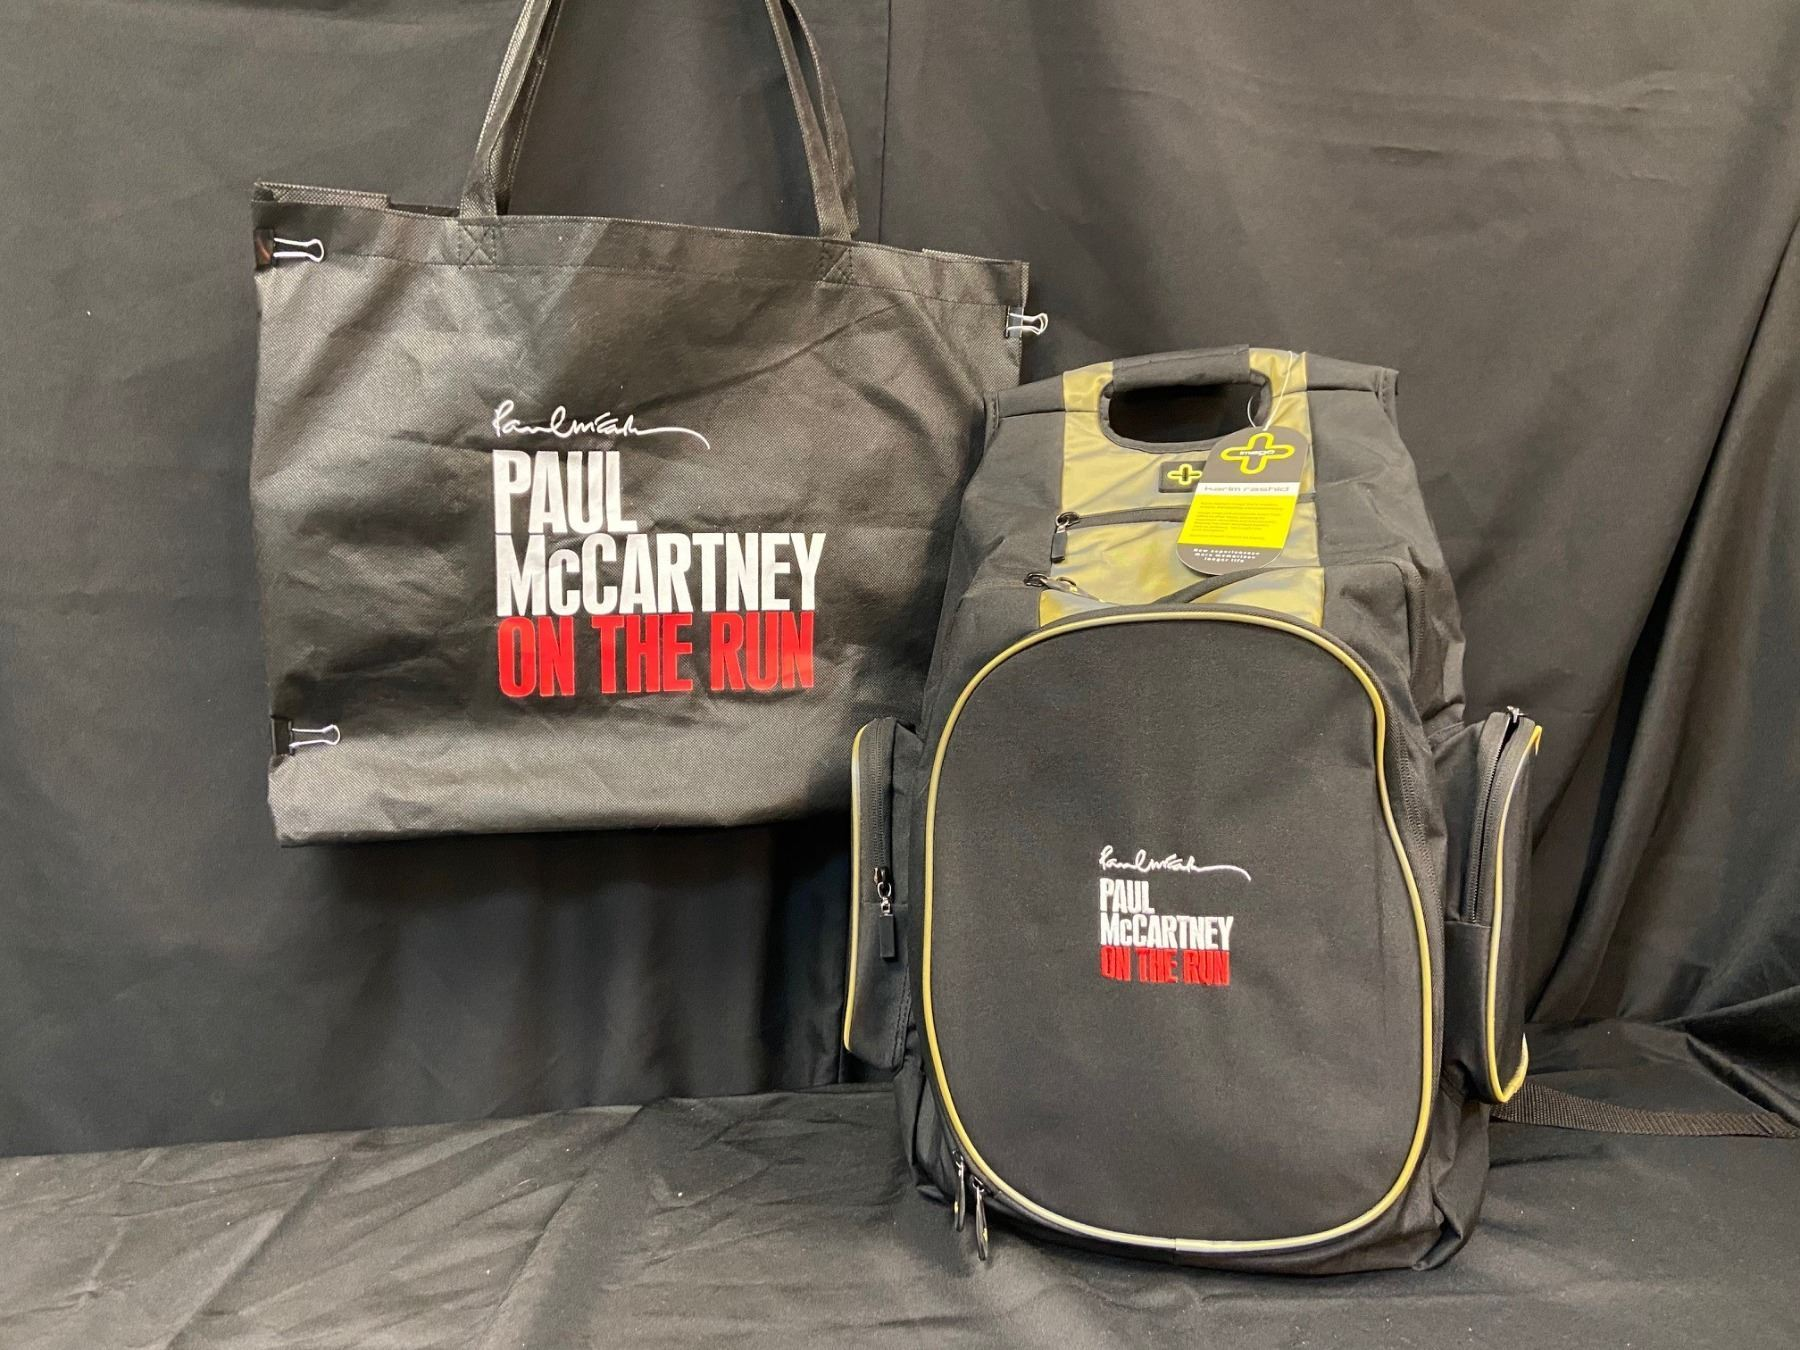 Paul McCartney  On The Run  Tour Kit